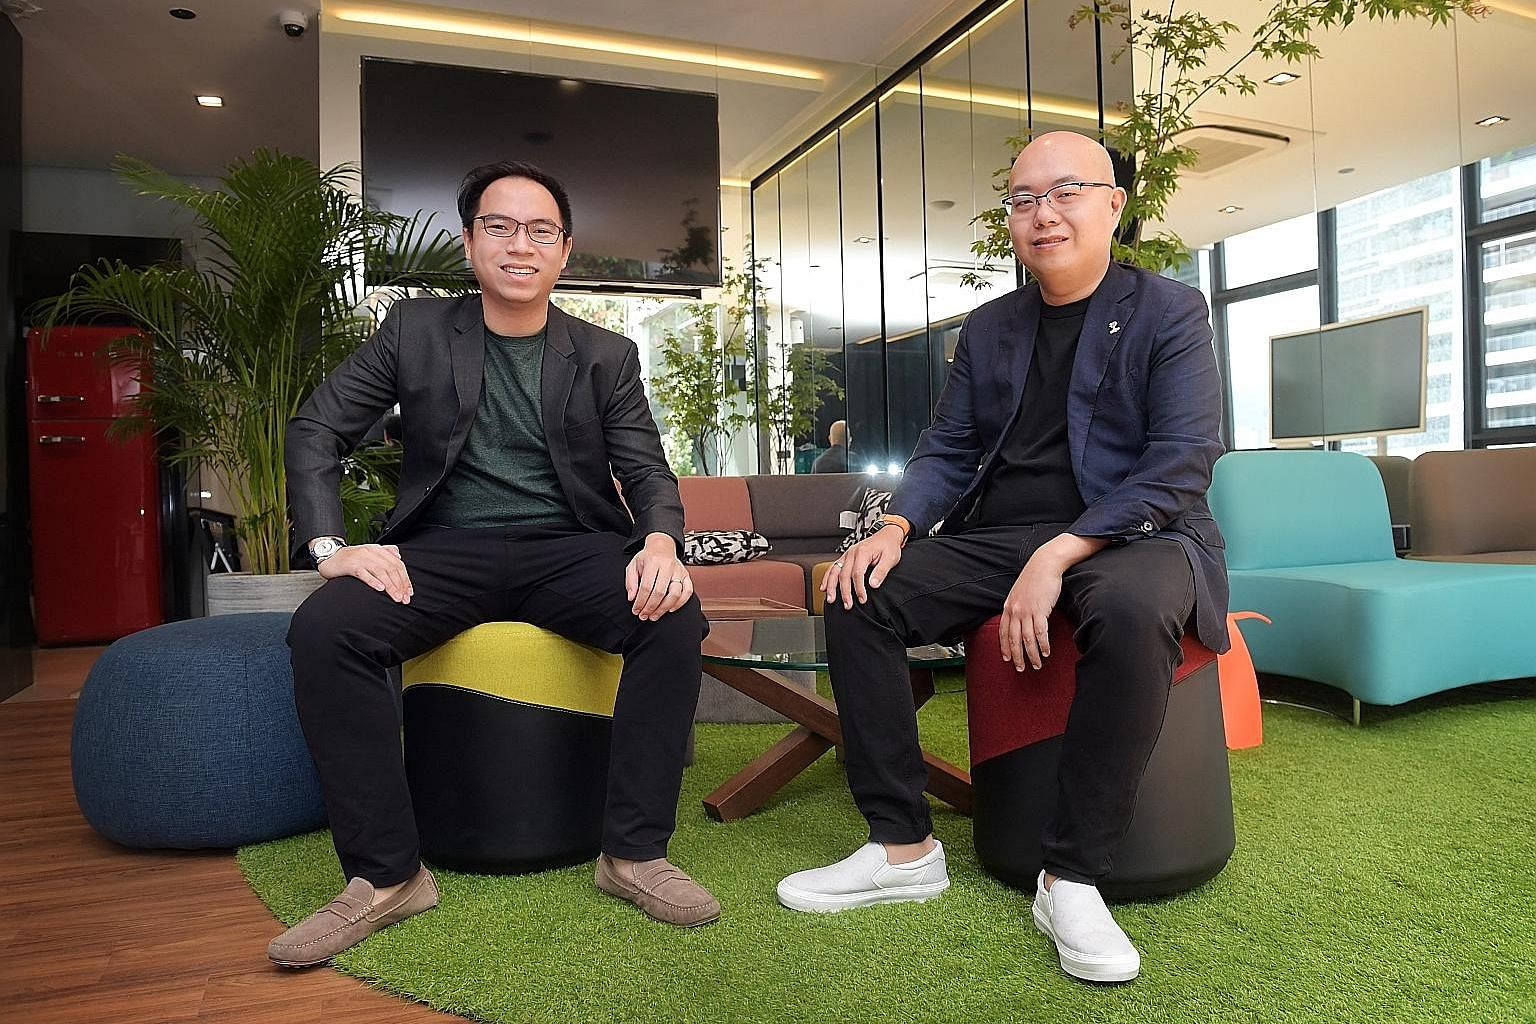 Boogle chief operating officer Christofle Rio (left) and co-founder and chief technical officer Darren Goh. The Boogle search engine, built on a hybrid blockchain, promises search results that are free from monopolistic control or jurisdictional rest